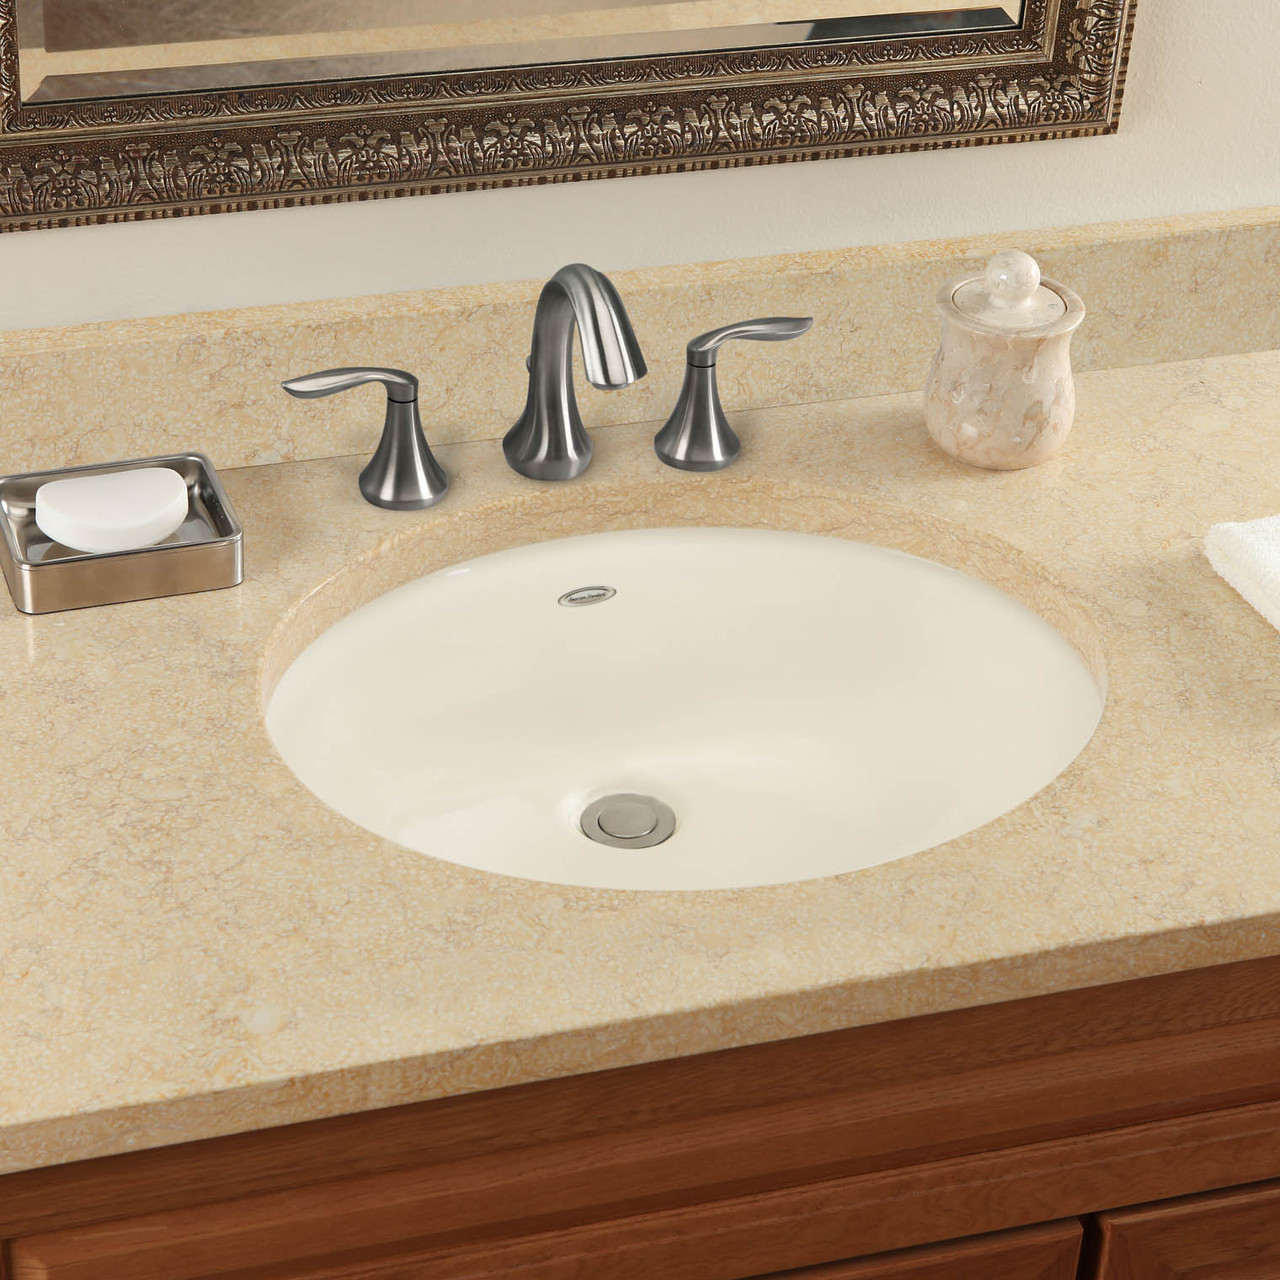 American Standard Ovalyn Undermount Lavatory Sink In White 08ams